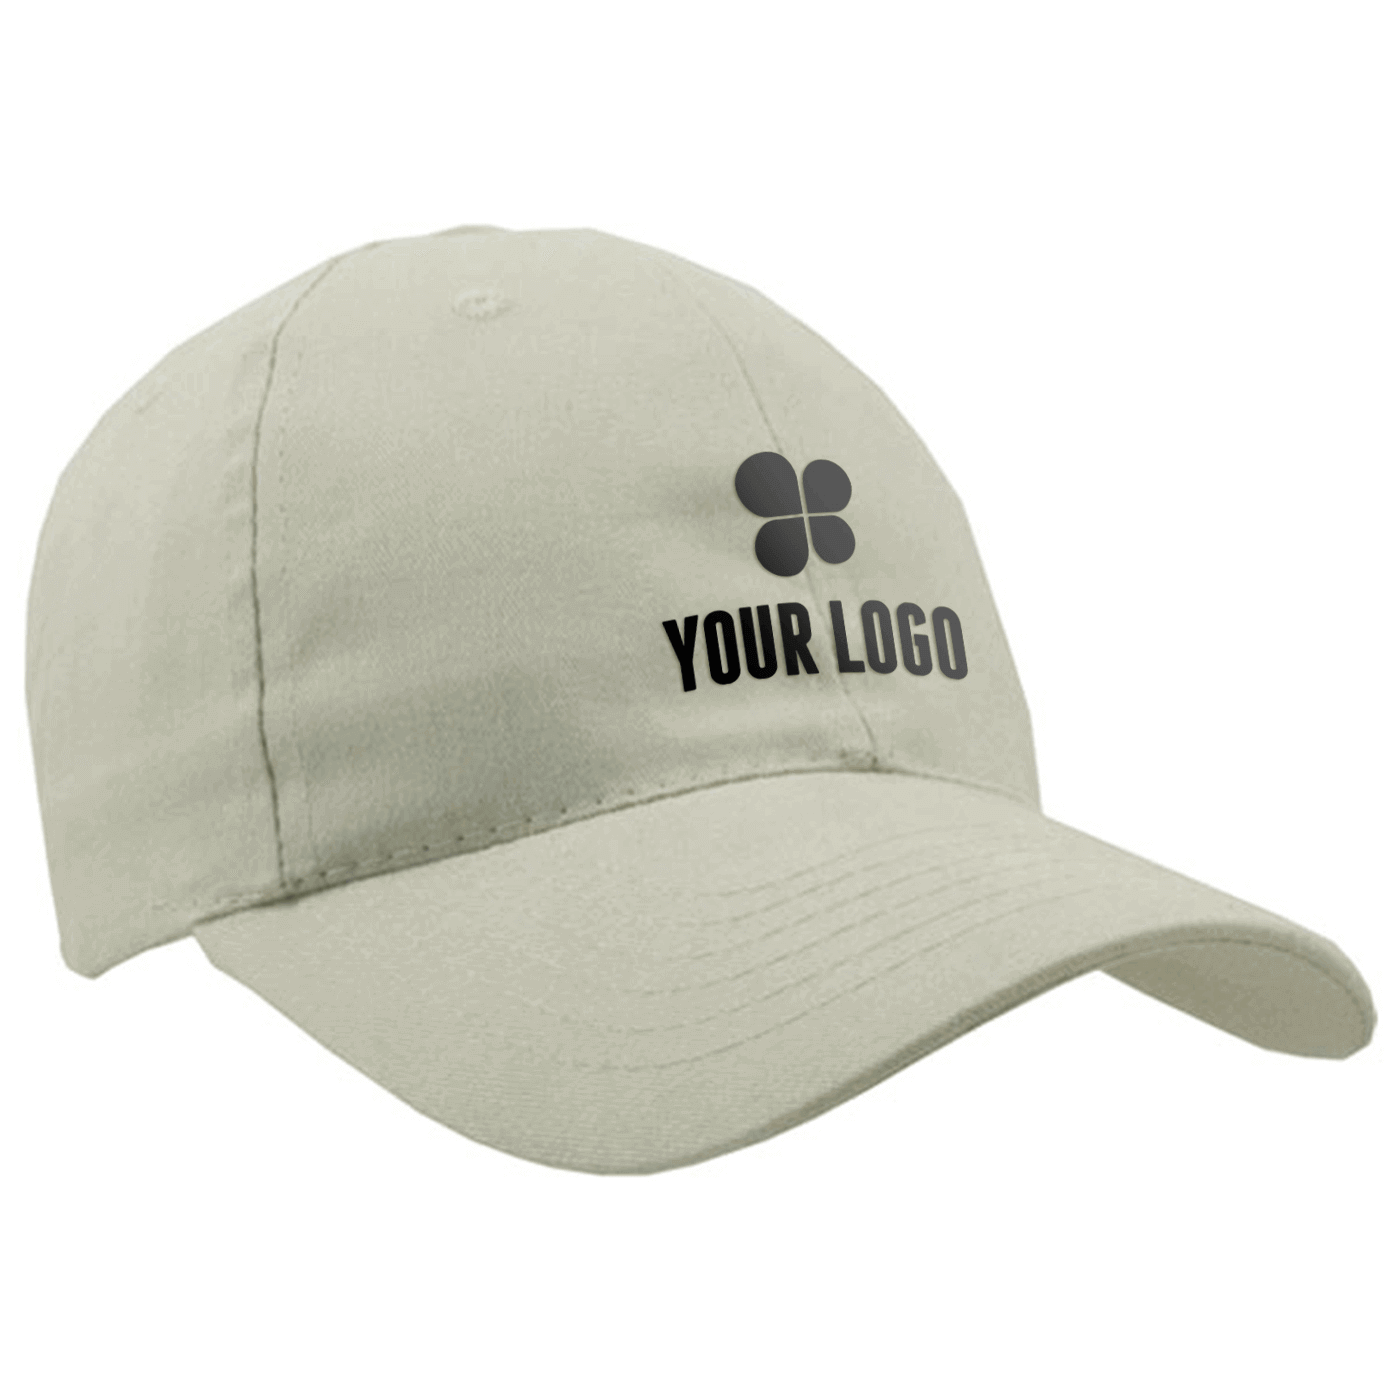 Lightweight Brushed Cotton Twill Cap